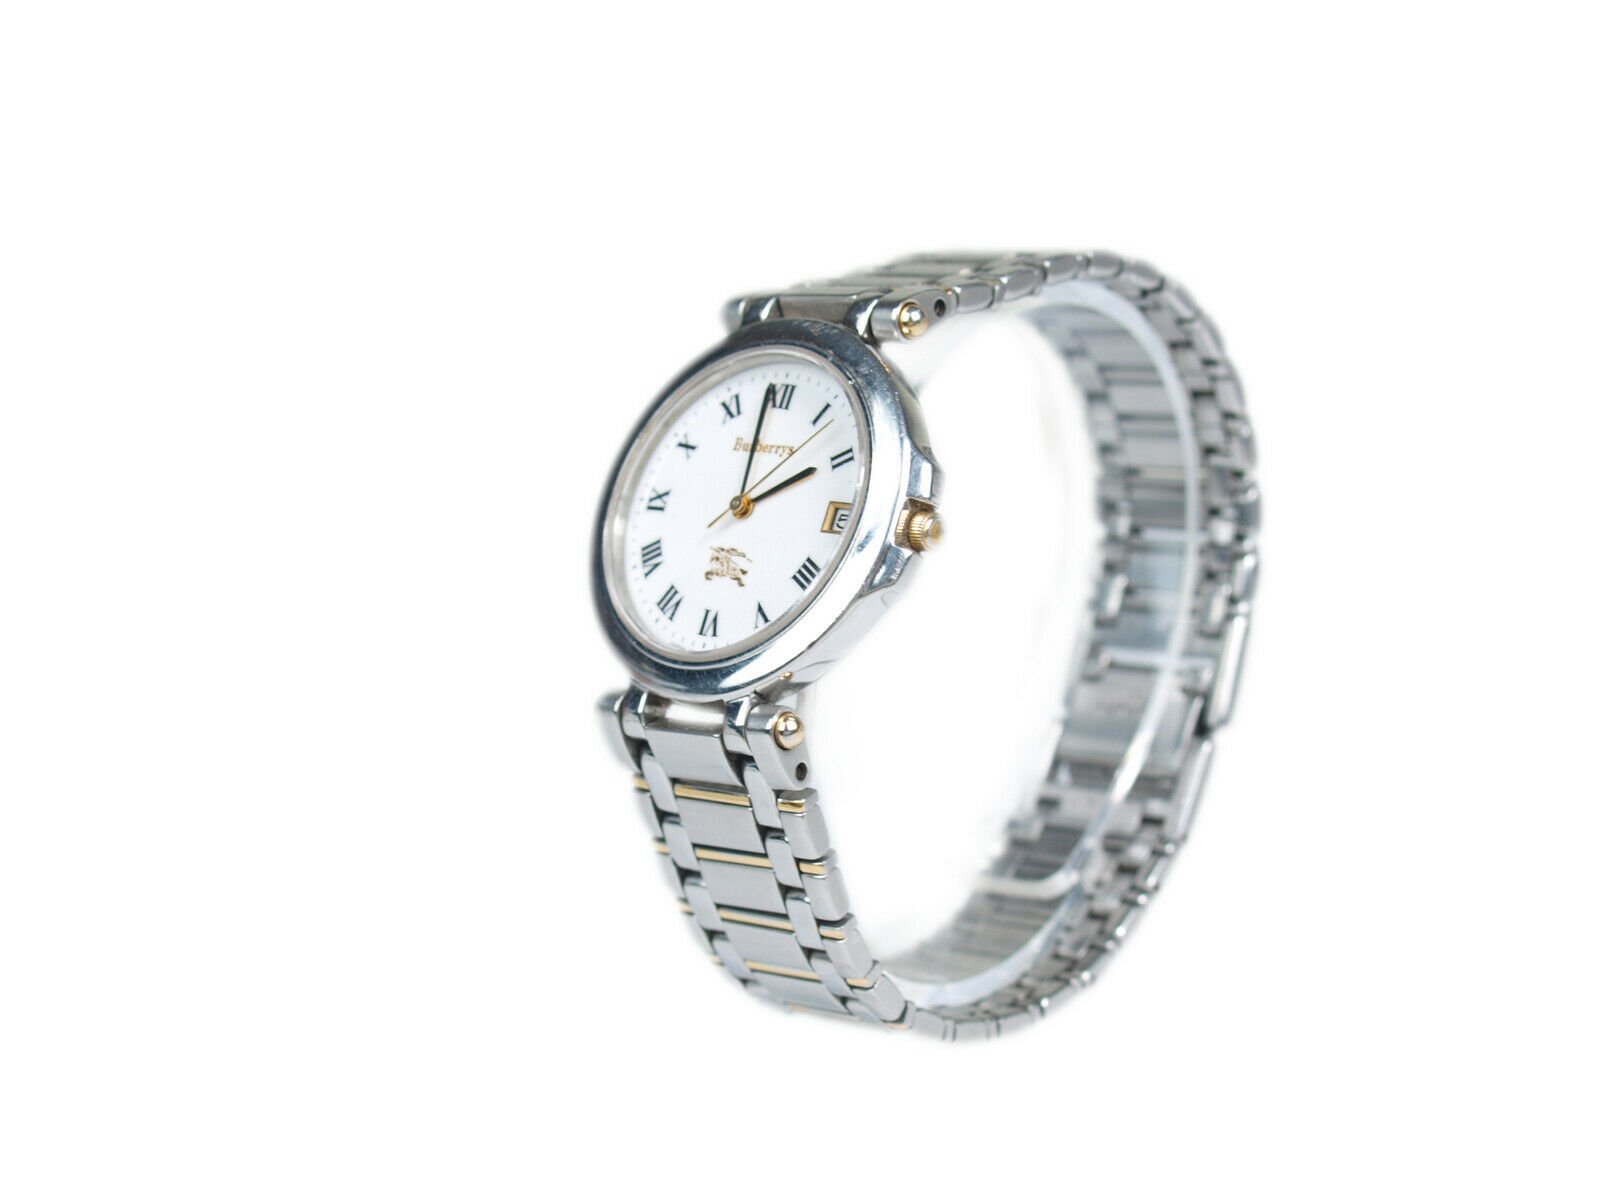 Authentic BURBERRYS White Dial Stainless Steel Women's Quartz Watch BW17927L